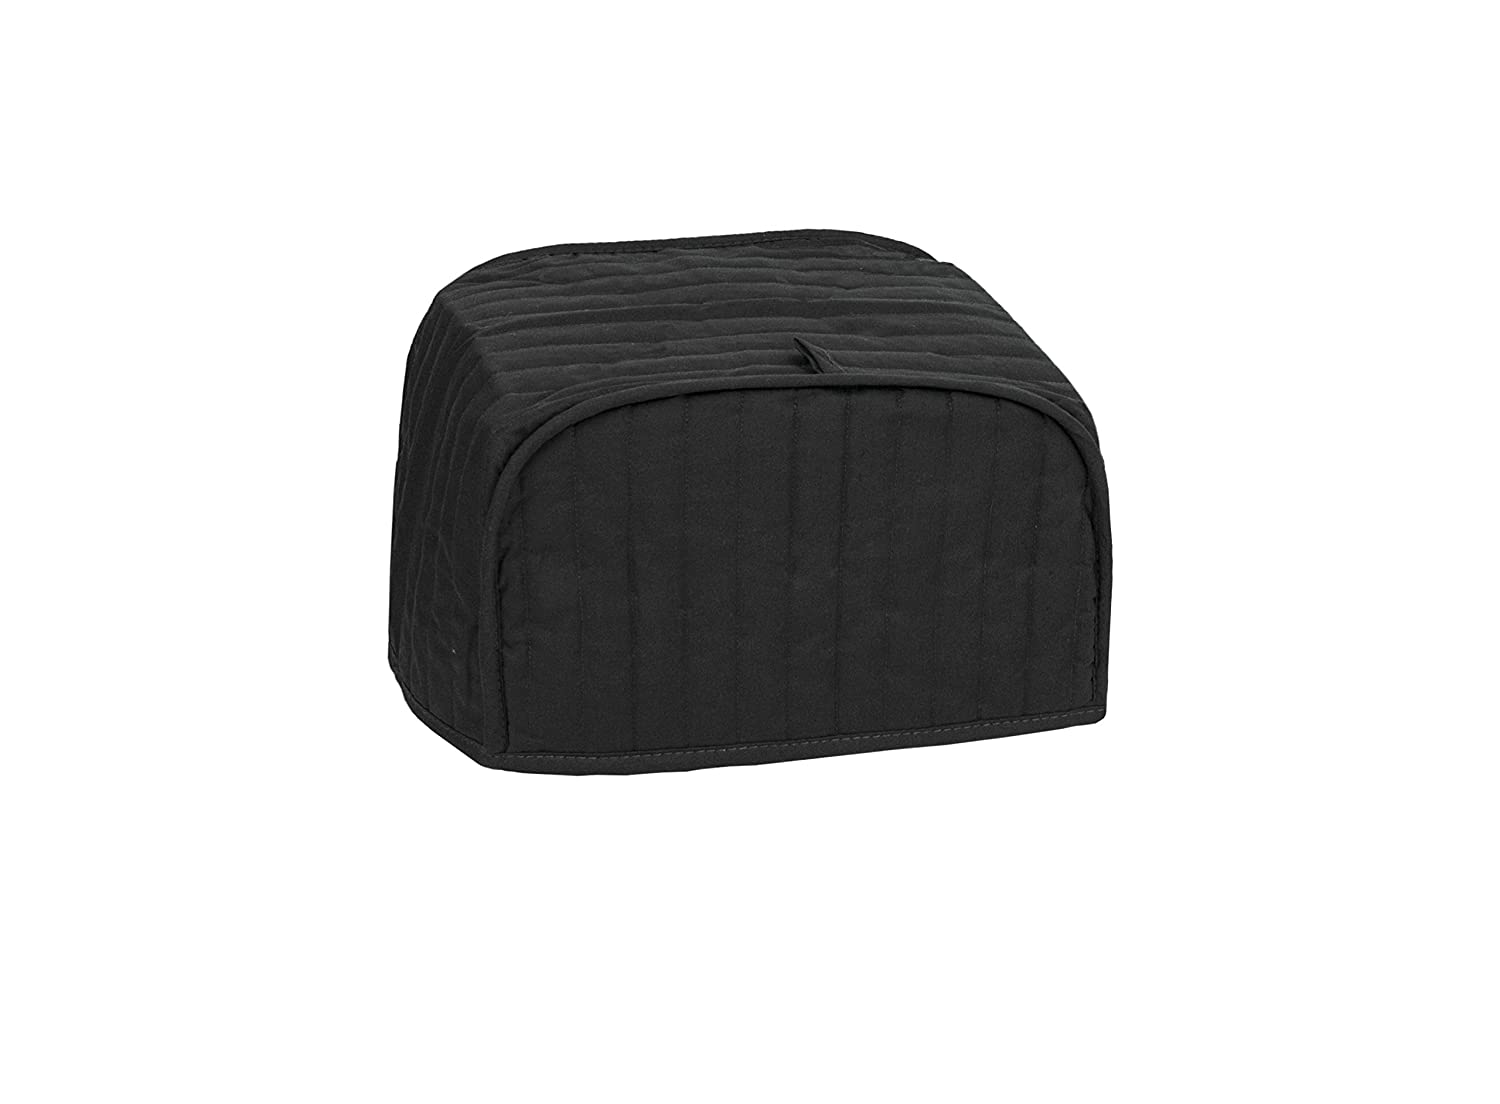 RITZ Polyester / Cotton Quilted Two Slice Toaster Appliance Cover, Dust and Fingerprint Protection, Machine Washable, Black